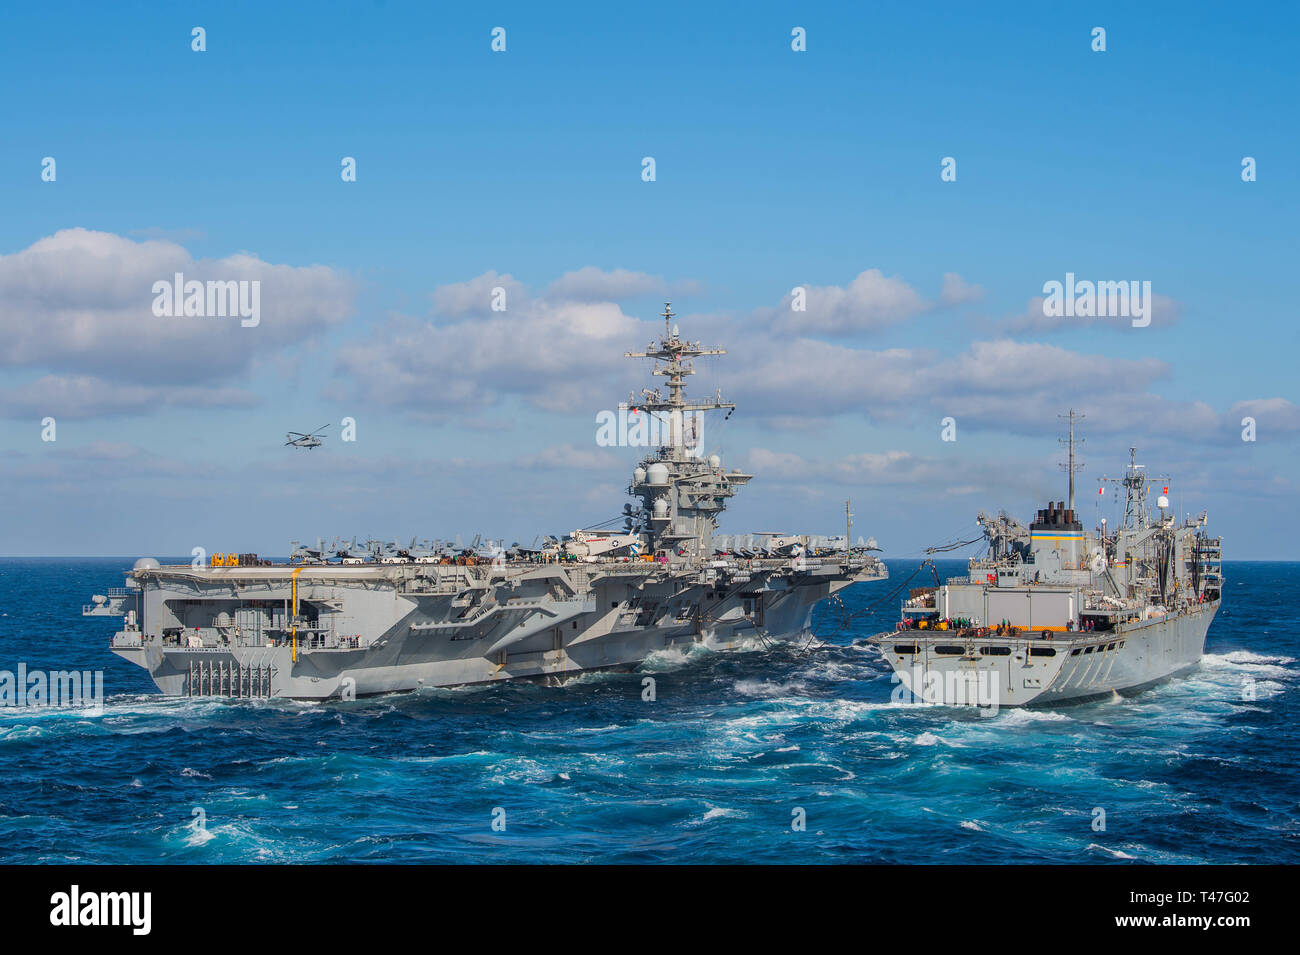 190412-N-DS741-0042 ATLANTIC OCEAN (April 12, 2019) The Nimitz-class aircraft carrier USS Abraham Lincoln (CVN 72) conducts a replenishment-at-sea (RAS) with the fast combat support ship USNS Arctic (T-AOE-8). Abraham Lincoln is underway as part of the Abraham Lincoln Carrier Strike Group (ABECSG) deployment in support of maritime security cooperation efforts in the U.S. 5th, 6th and 7th Fleet areas of responsibility. With Abraham Lincoln as the flagship, deployed strike group assets include staffs, ships and aircraft of Carrier Strike Group 12 (CSG 12), Destroyer Squadron 2 (DESRON 2), USS Le - Stock Image